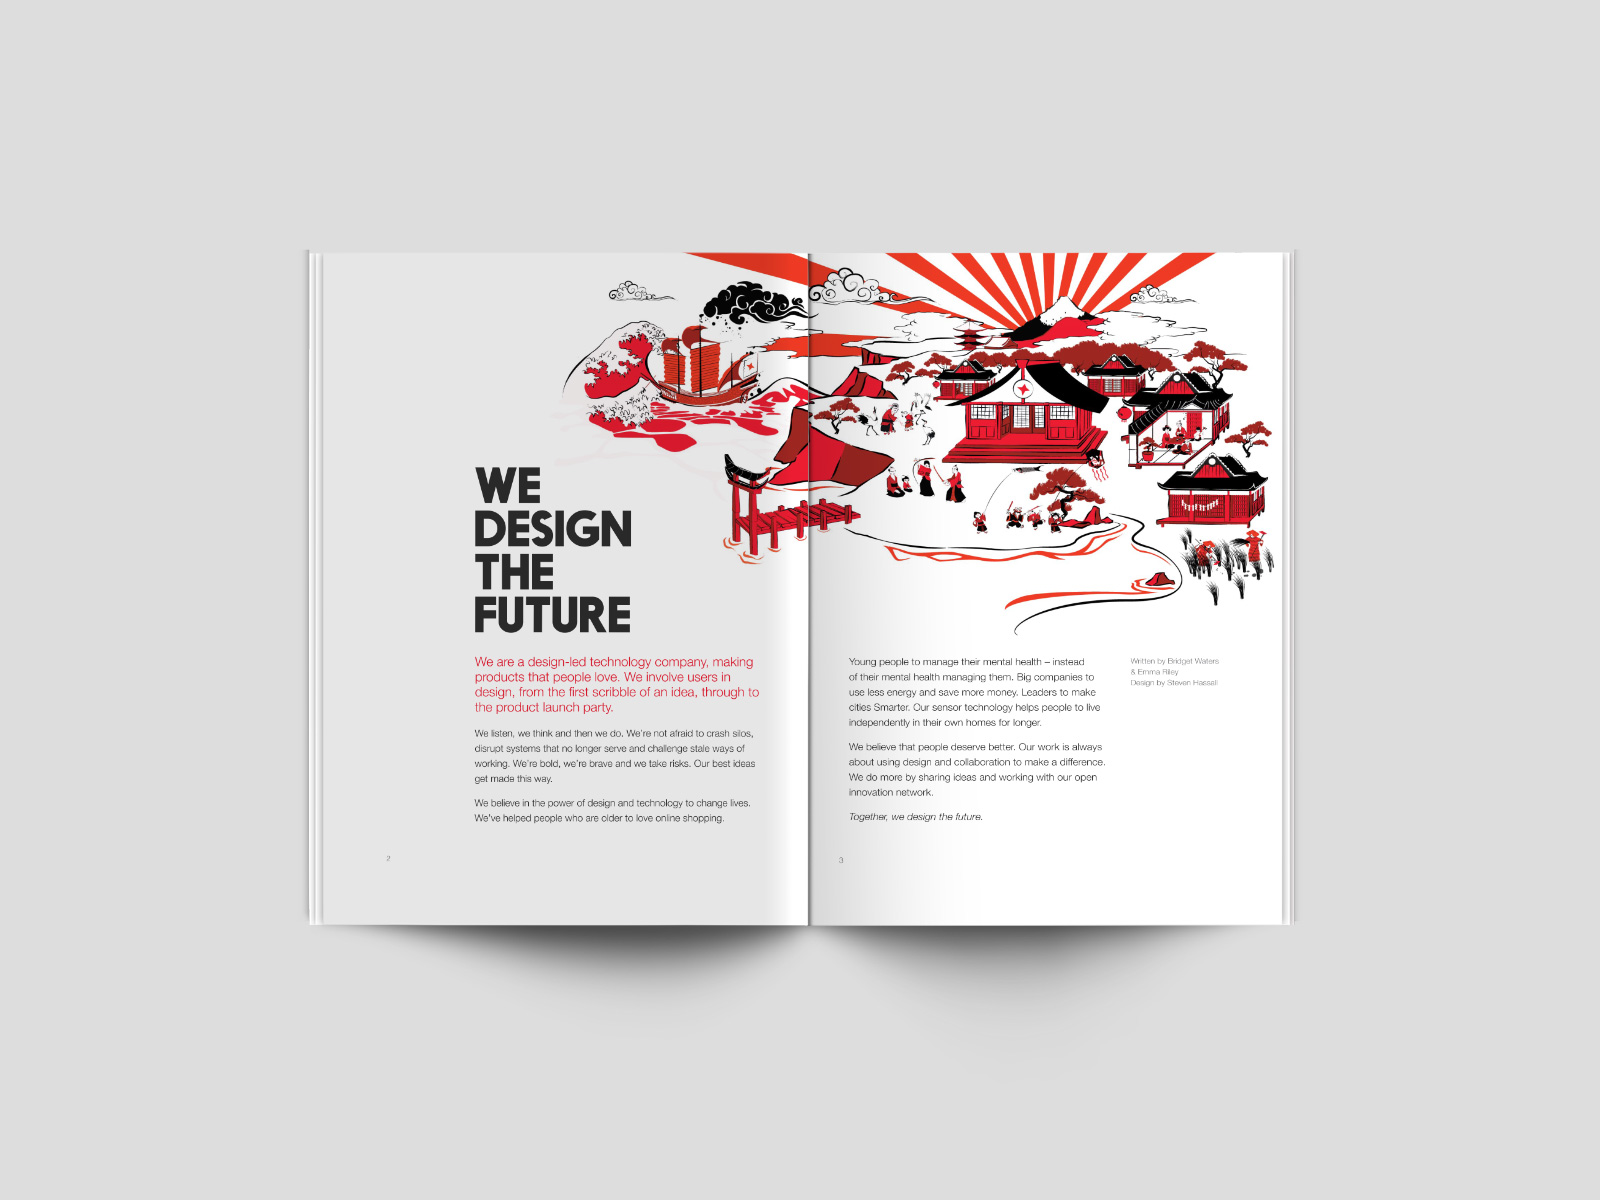 Promotional magazine design for tech start-up